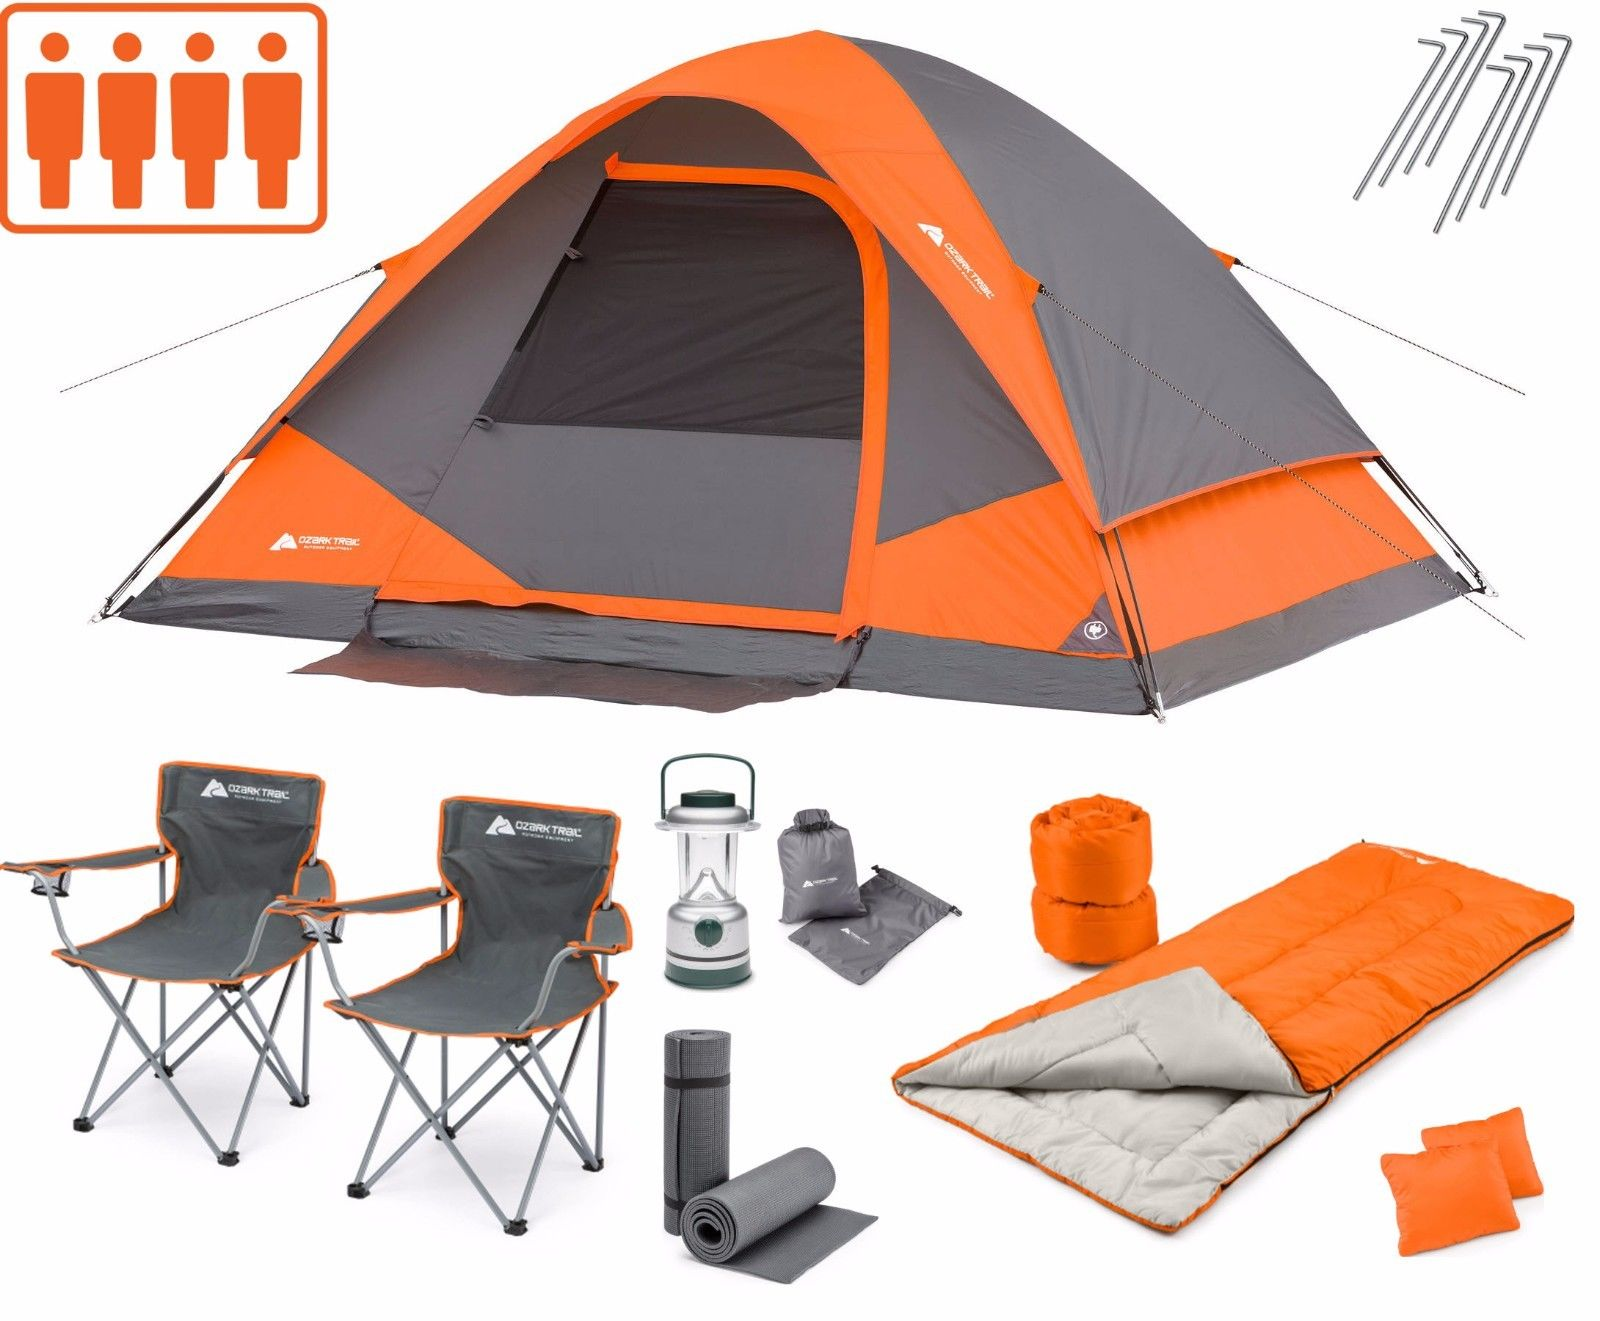 camping-tent-set-sleeping-bags-pads-chairs-pillows-22pc-outdoor-hiking-hunting-f2f608ab522345d5412ba66223b84cab.jpeg